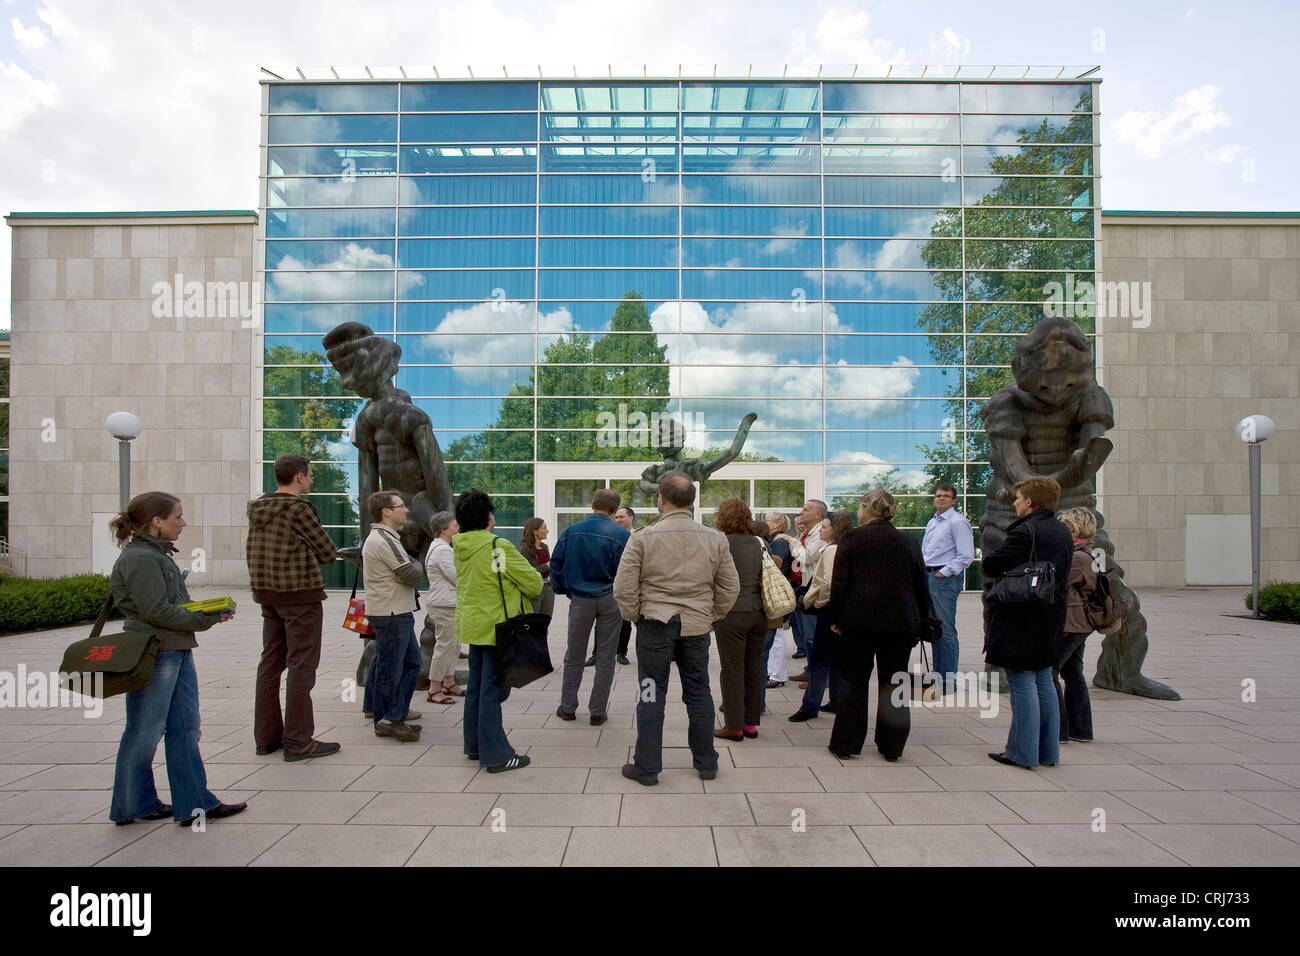 group of visitors during a guided tour at 'Kulturpfadfest' in front of the glass cladding of the RWE building - Stock Image